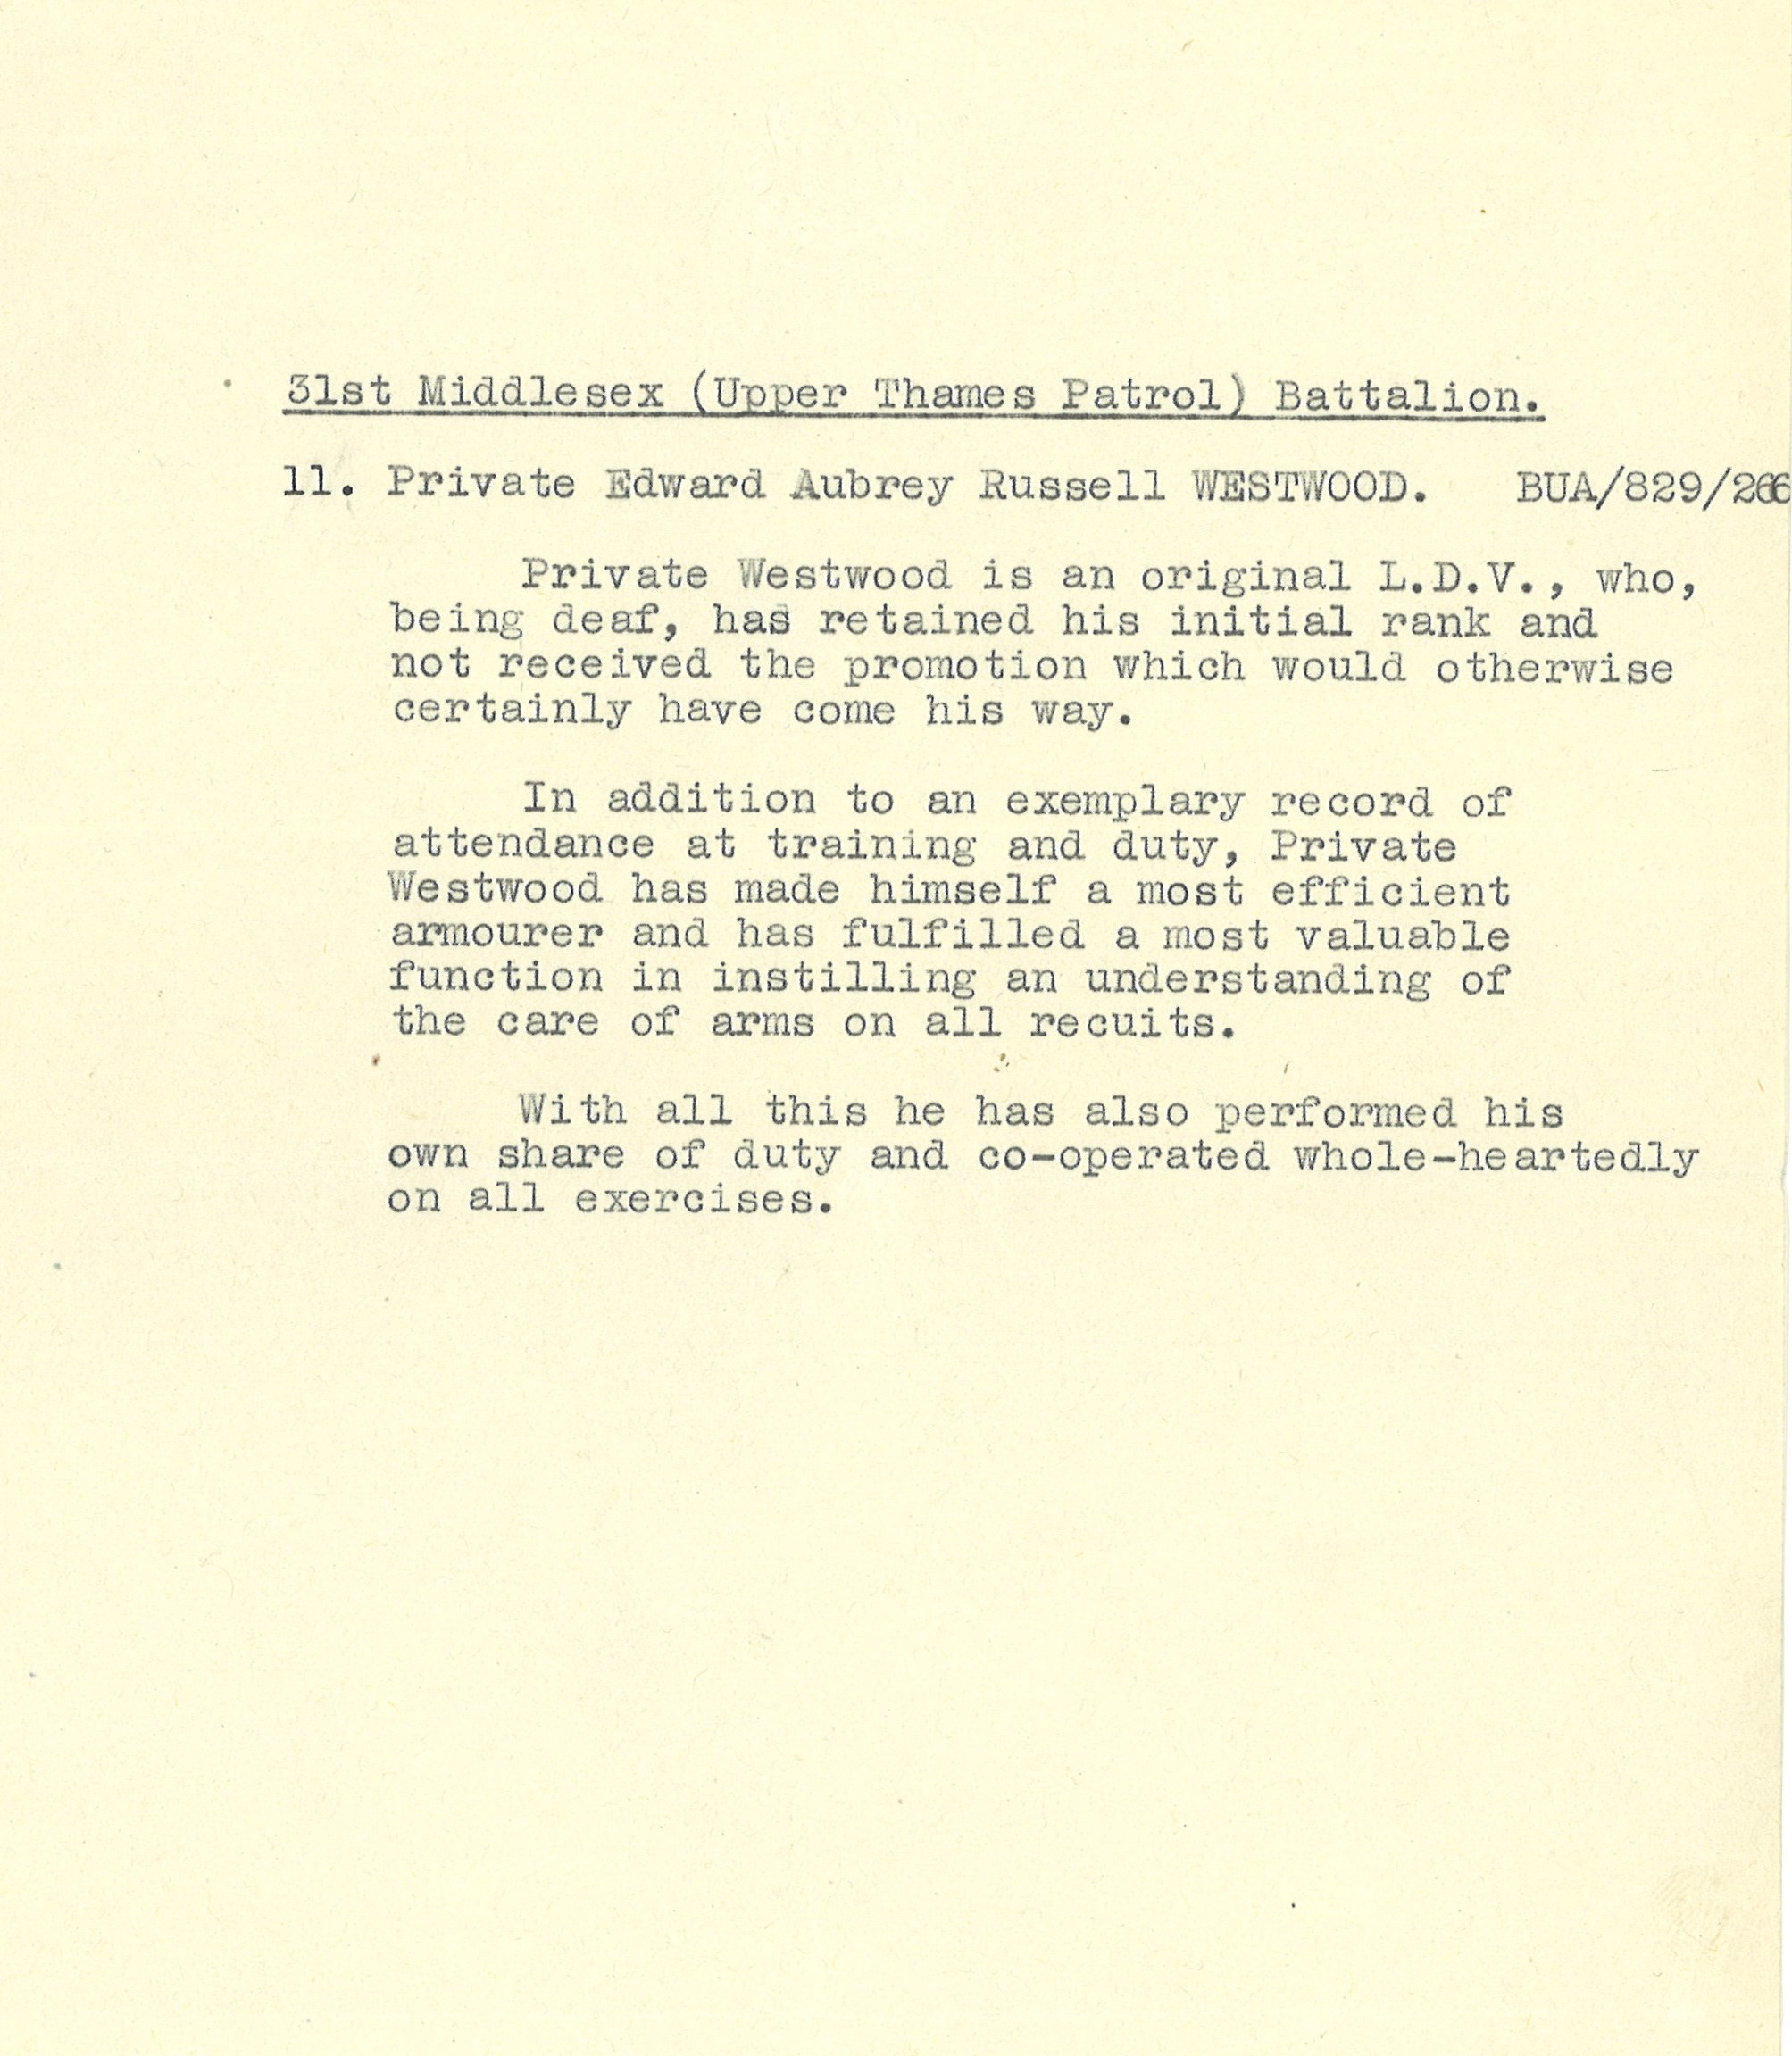 Typewritten recommendation for Private Edward Aubrey Russell Westwood